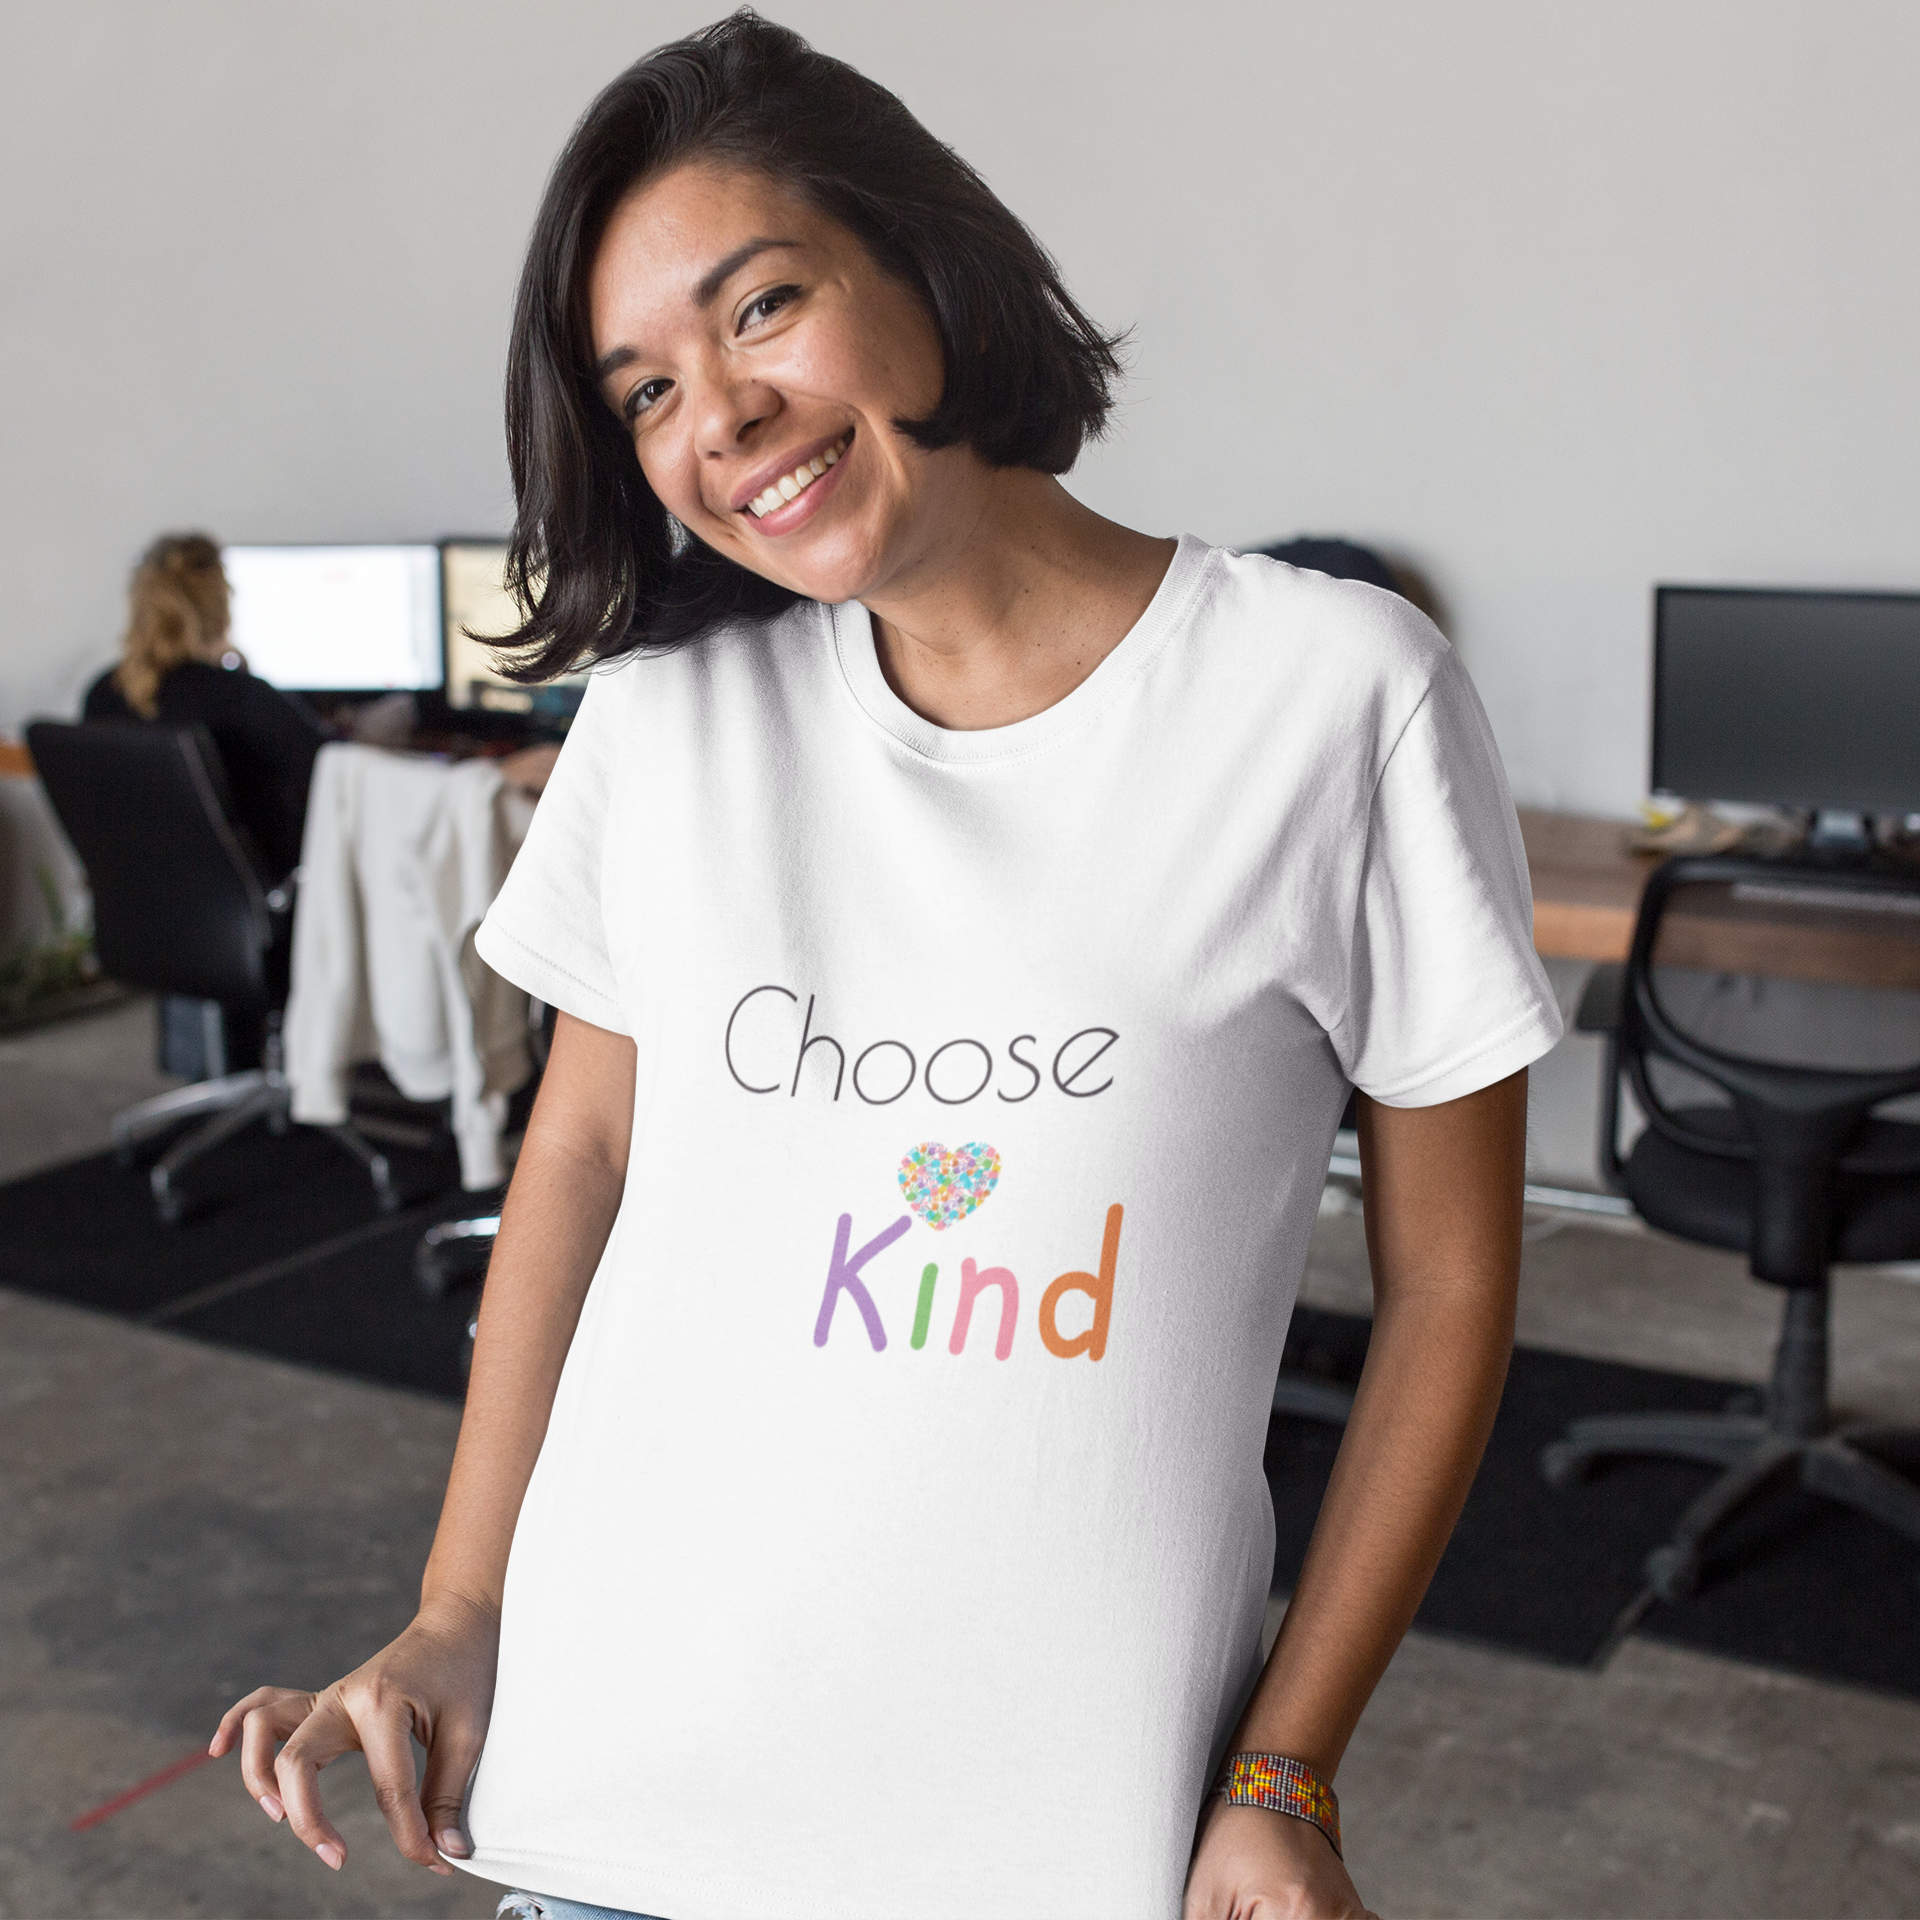 mockup-of-a-middle-aged-customer-showing-her-tshirt-design-at-the-office-a16039